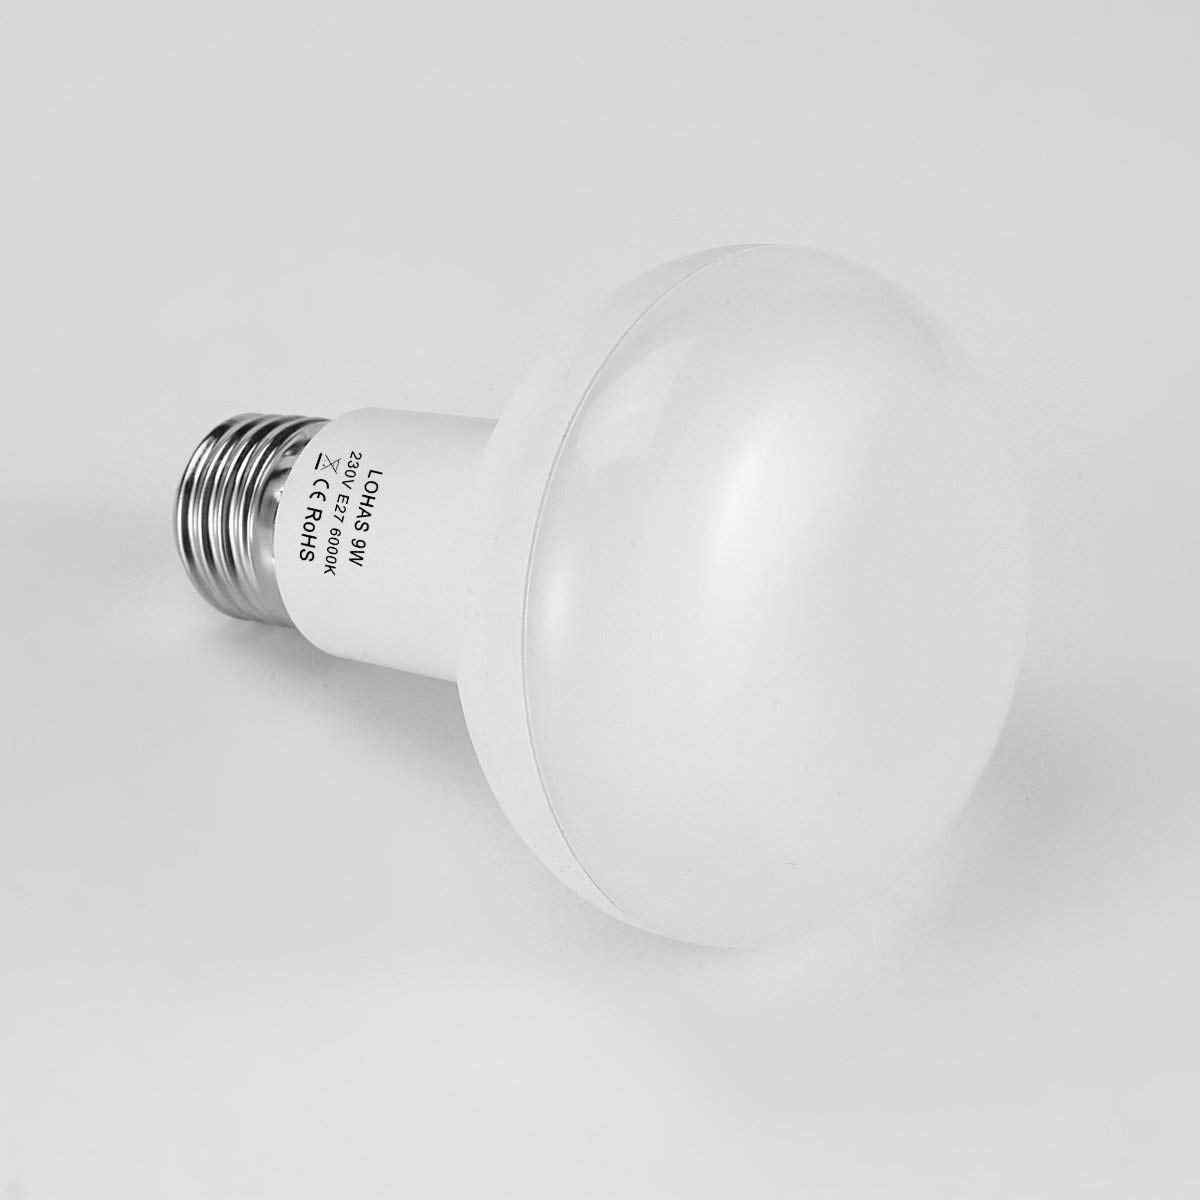 HLIGHT E26 E27 LED Bulb 9W Reflector Light Incandescent Indoor Outdoor Light 720lm Warm Cool White 3000 6000K 4PACK,E26 6000K Energy Class A+